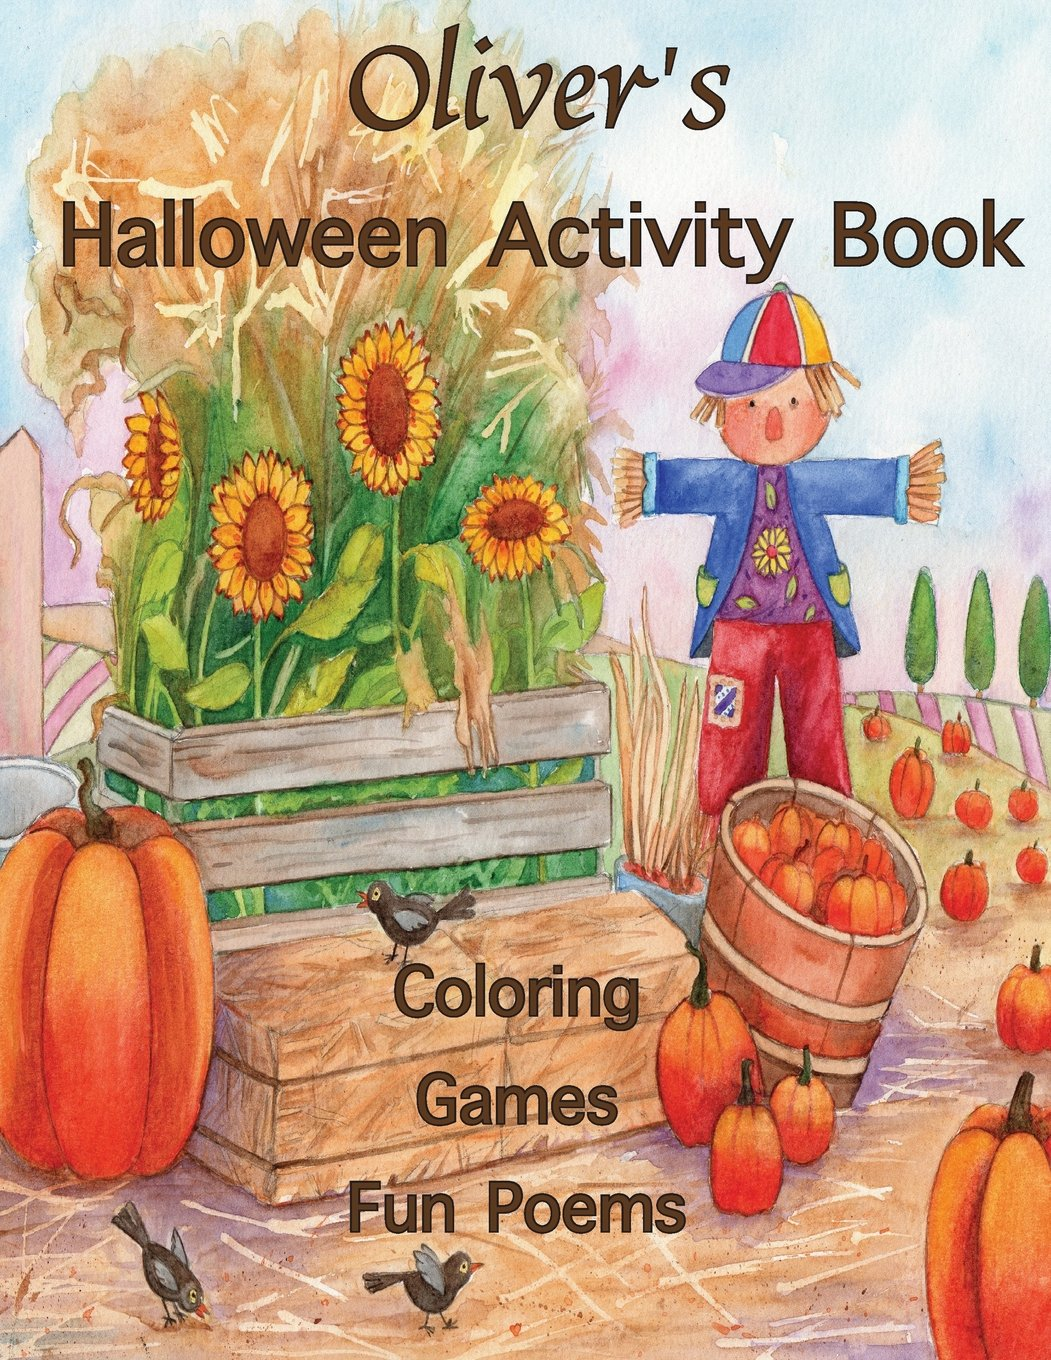 Oliver's Halloween Activity Book: (Personalized Books for Children), Halloween Coloring Book, Games: Mazes, Connect the Dots, Crossword Puzzle, ... gel pens, colored pencils, or crayons PDF